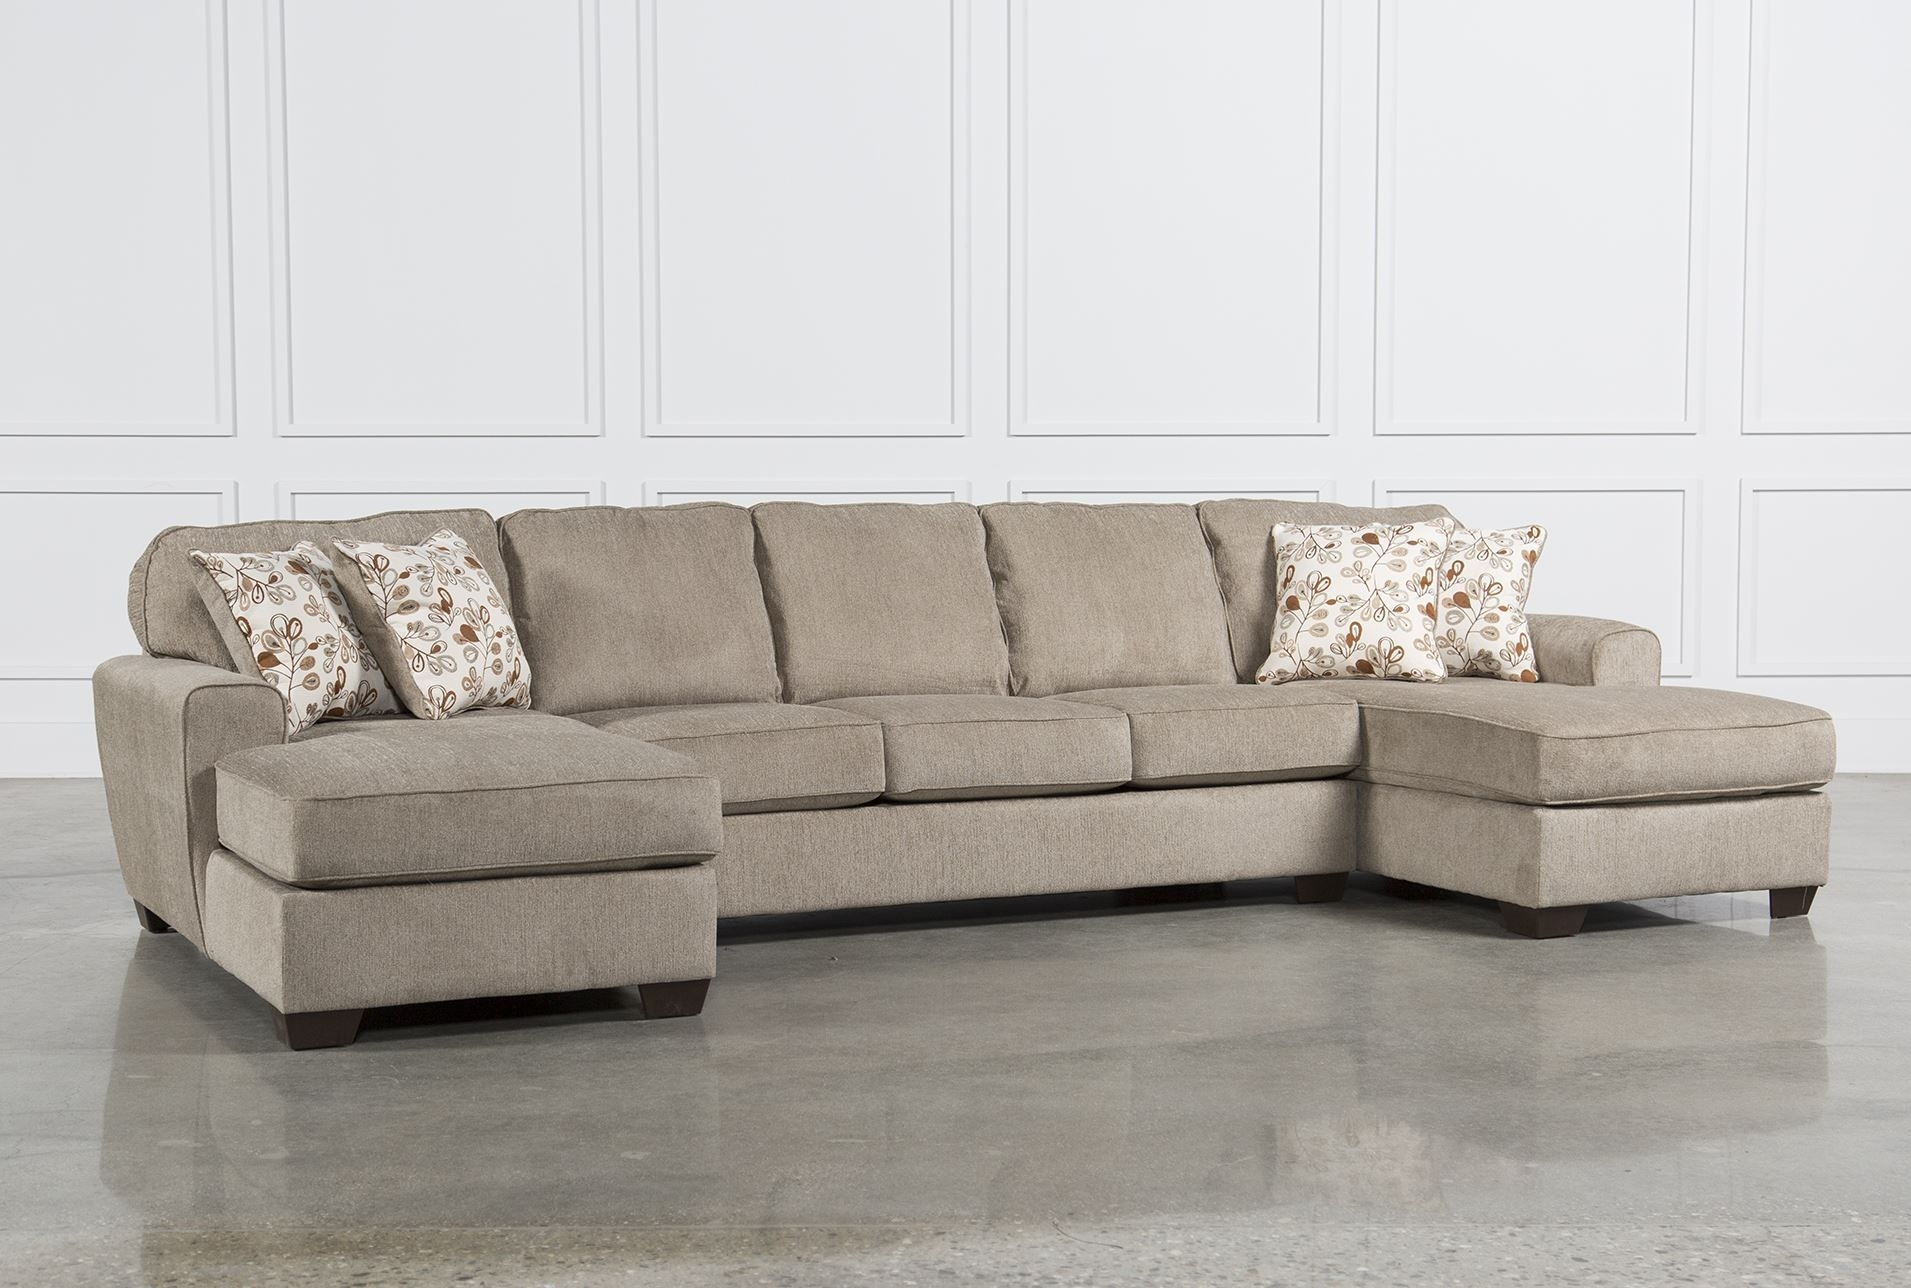 Patola Park 3 Piece Sectional W/2 Corner Chaises   Signature Pertaining To Avery 2 Piece Sectionals With Raf Armless Chaise (Photo 8 of 30)